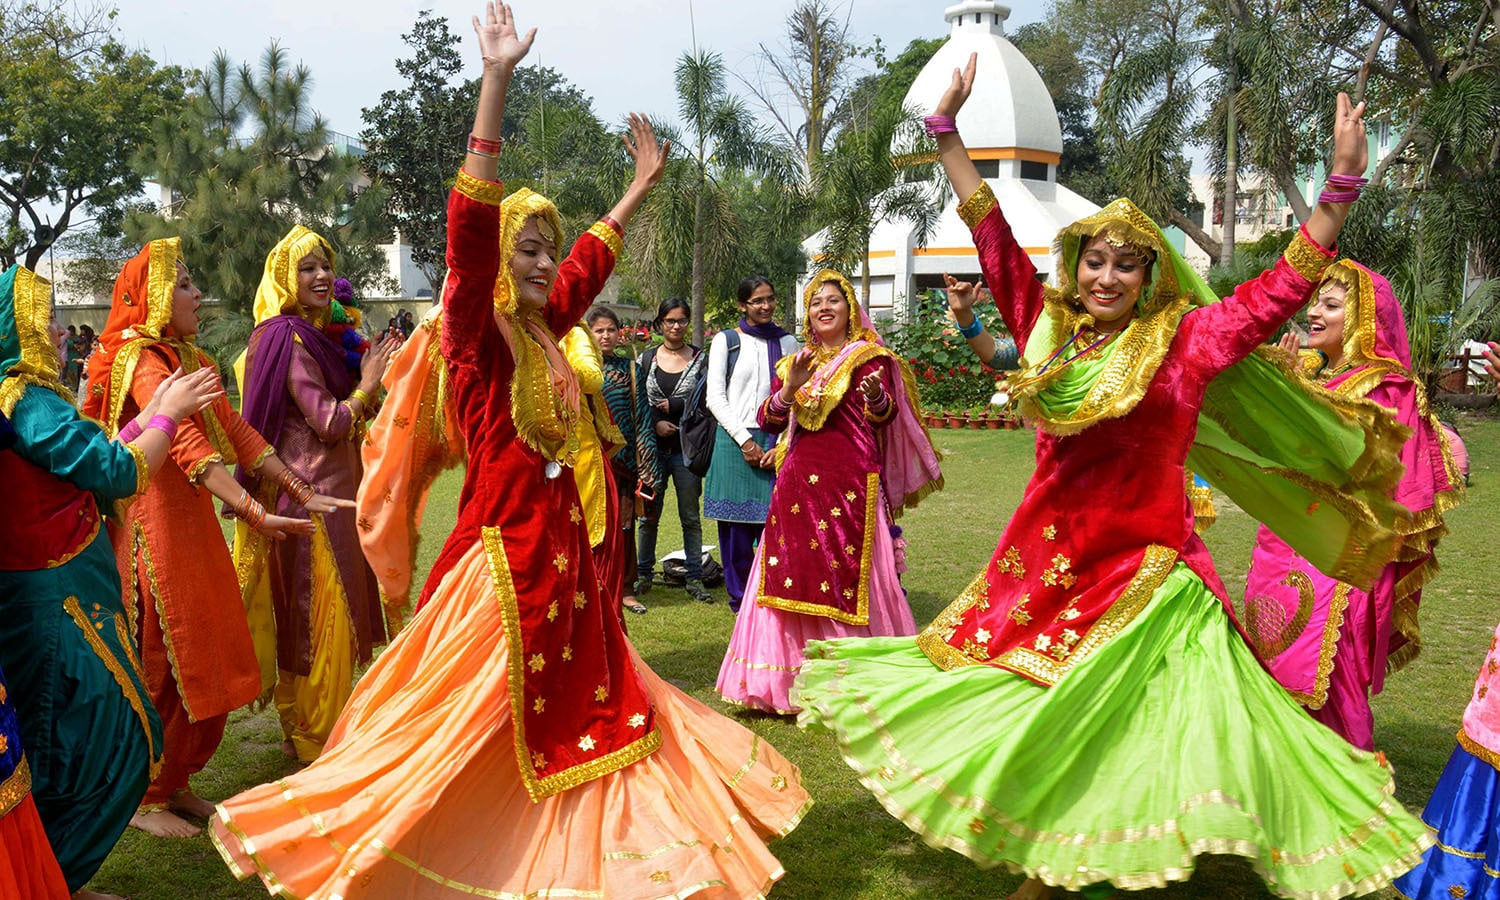 Young Indian women wear traditional Punjabi dress as they perform the 'Giddha' dance during celebrations on the occasion of an International Women's Day function in Amritsar.─AFP